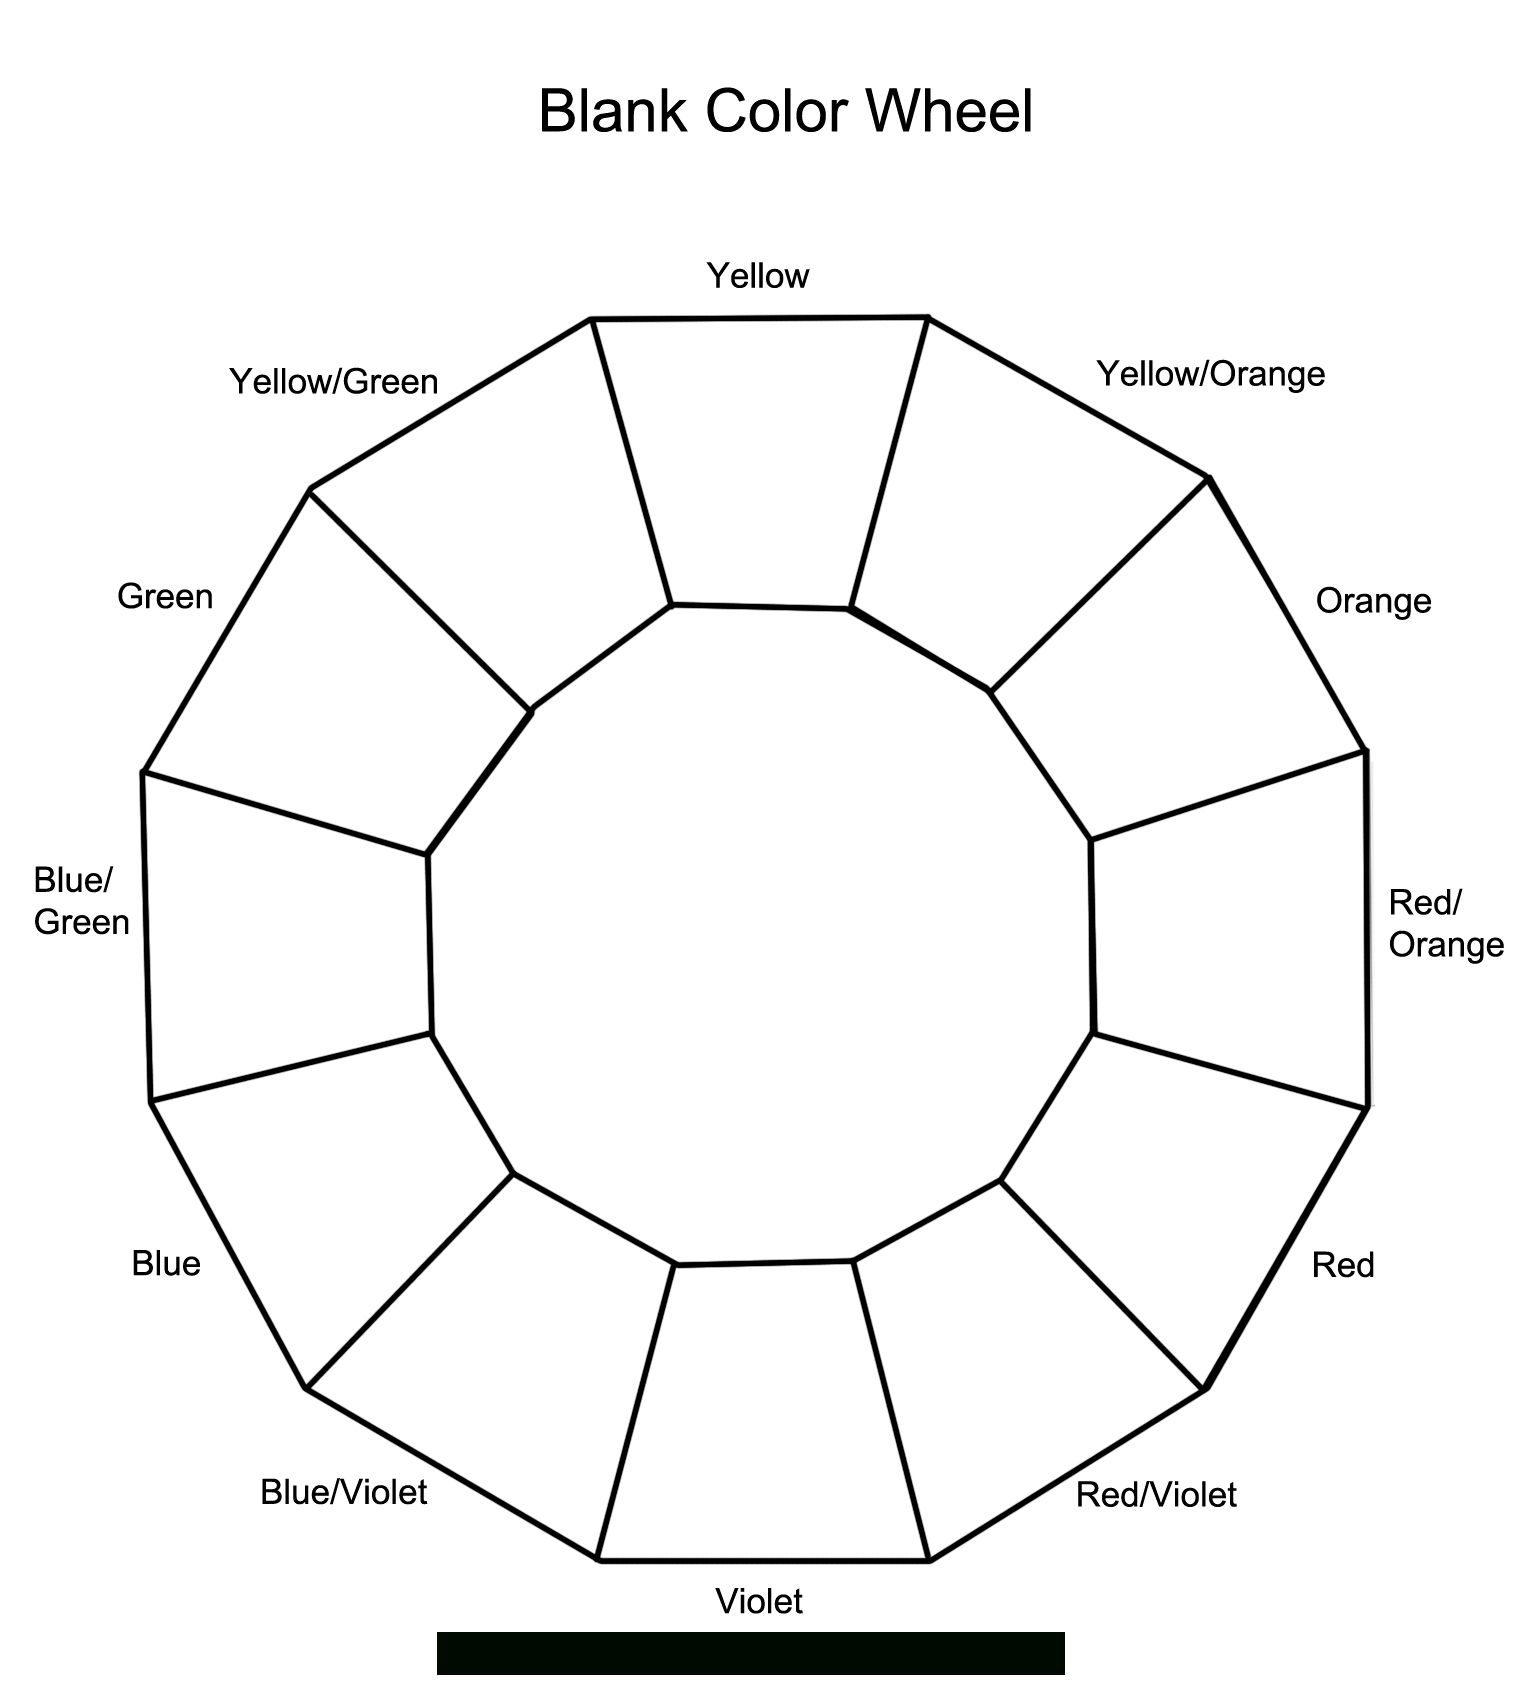 12 Section Colour Wheel In